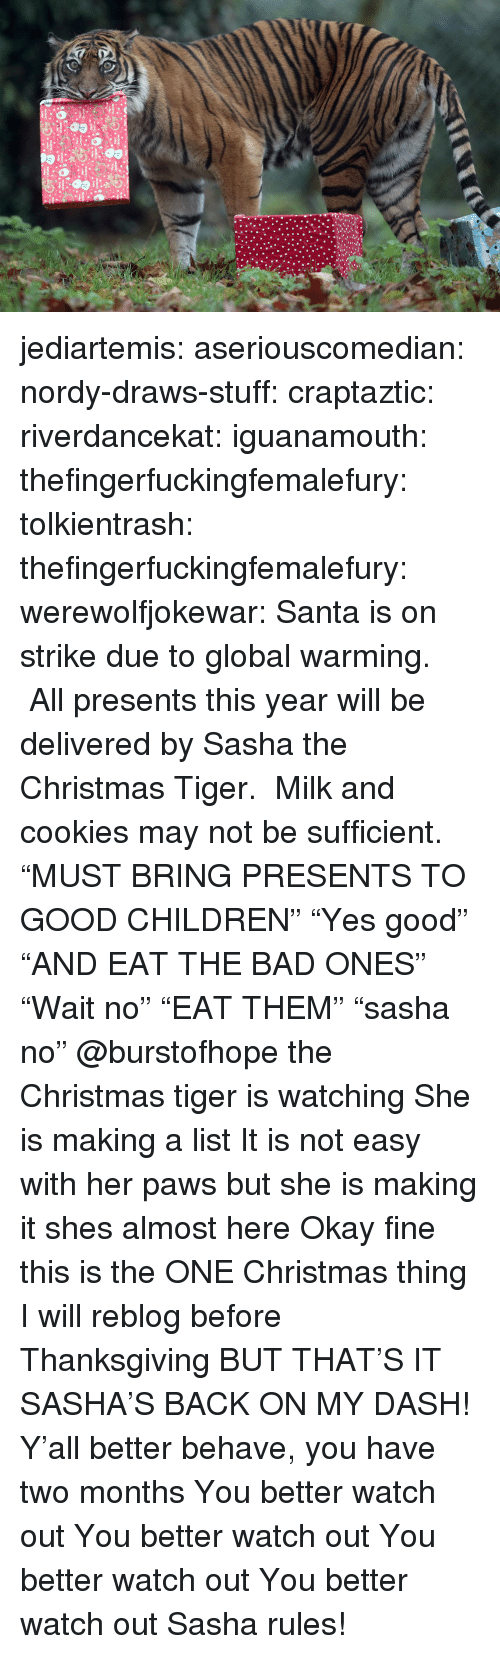 "Bad, Children, and Christmas: jediartemis:  aseriouscomedian:  nordy-draws-stuff:   craptaztic:  riverdancekat:  iguanamouth:  thefingerfuckingfemalefury:  tolkientrash:  thefingerfuckingfemalefury:  werewolfjokewar:  Santa is on strike due to global warming.  All presents this year will be delivered by Sasha the Christmas Tiger.  Milk and cookies may not be sufficient.  ""MUST BRING PRESENTS TO GOOD CHILDREN"" ""Yes good"" ""AND EAT THE BAD ONES""  ""Wait no"" ""EAT THEM"" ""sasha no""   @burstofhope the Christmas tiger is watching  She is making a list  It is not easy with her paws but she is making it   shes almost here   Okay fine this is the ONE Christmas thing I will reblog before Thanksgiving BUT THAT'S IT  SASHA'S BACK ON MY DASH!  Y'all better behave, you have two months   You better watch out You better watch out You better watch out You better watch out  Sasha rules!"